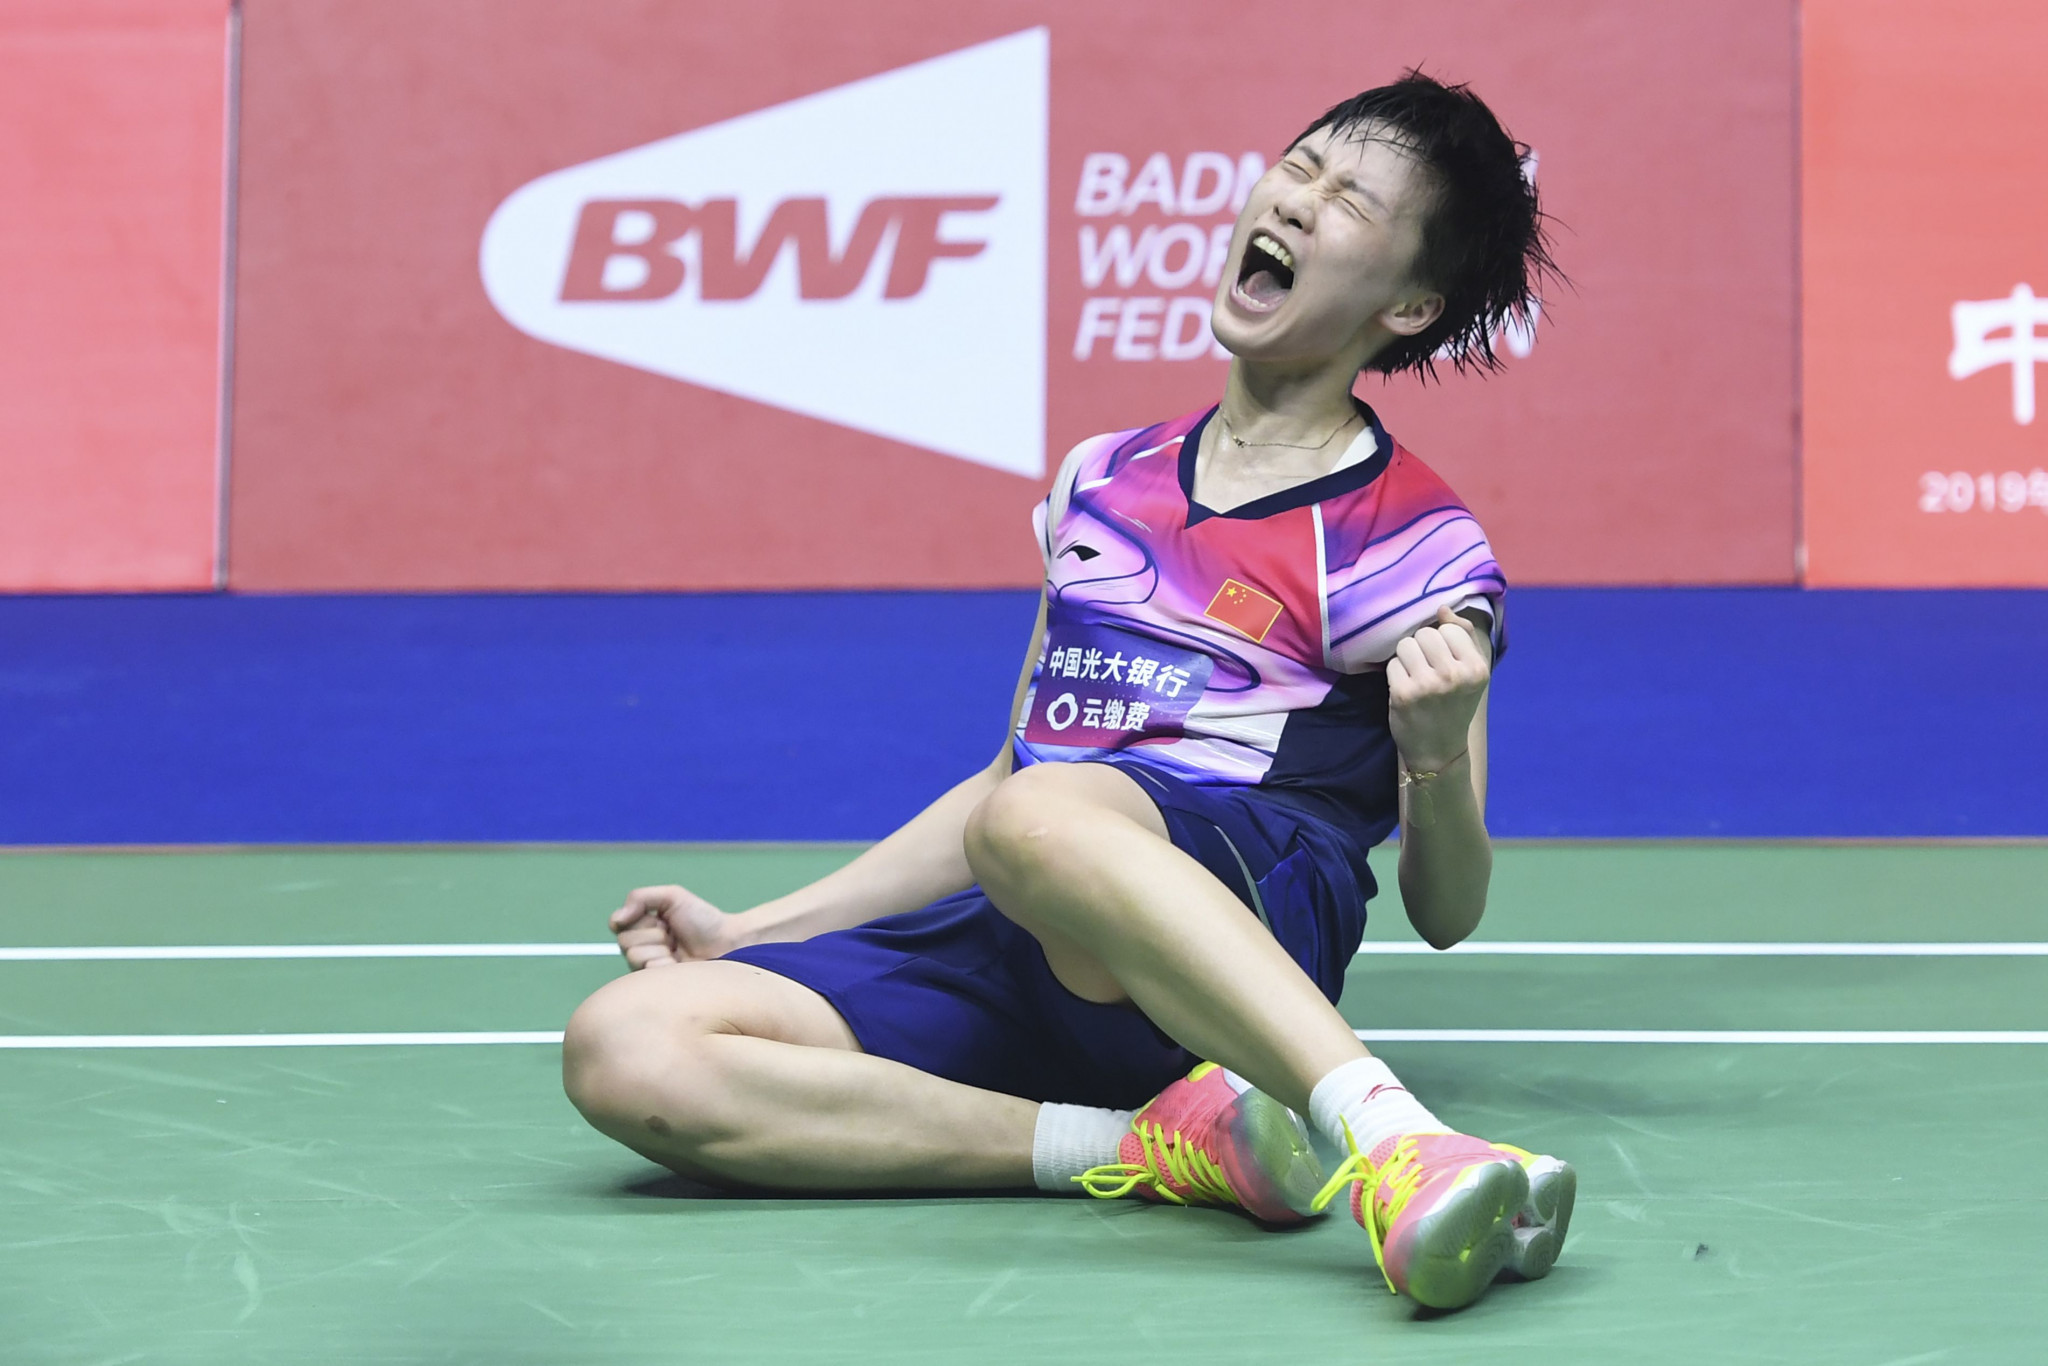 Chen Yufei battled to an all-important women's singles win ©Getty Images